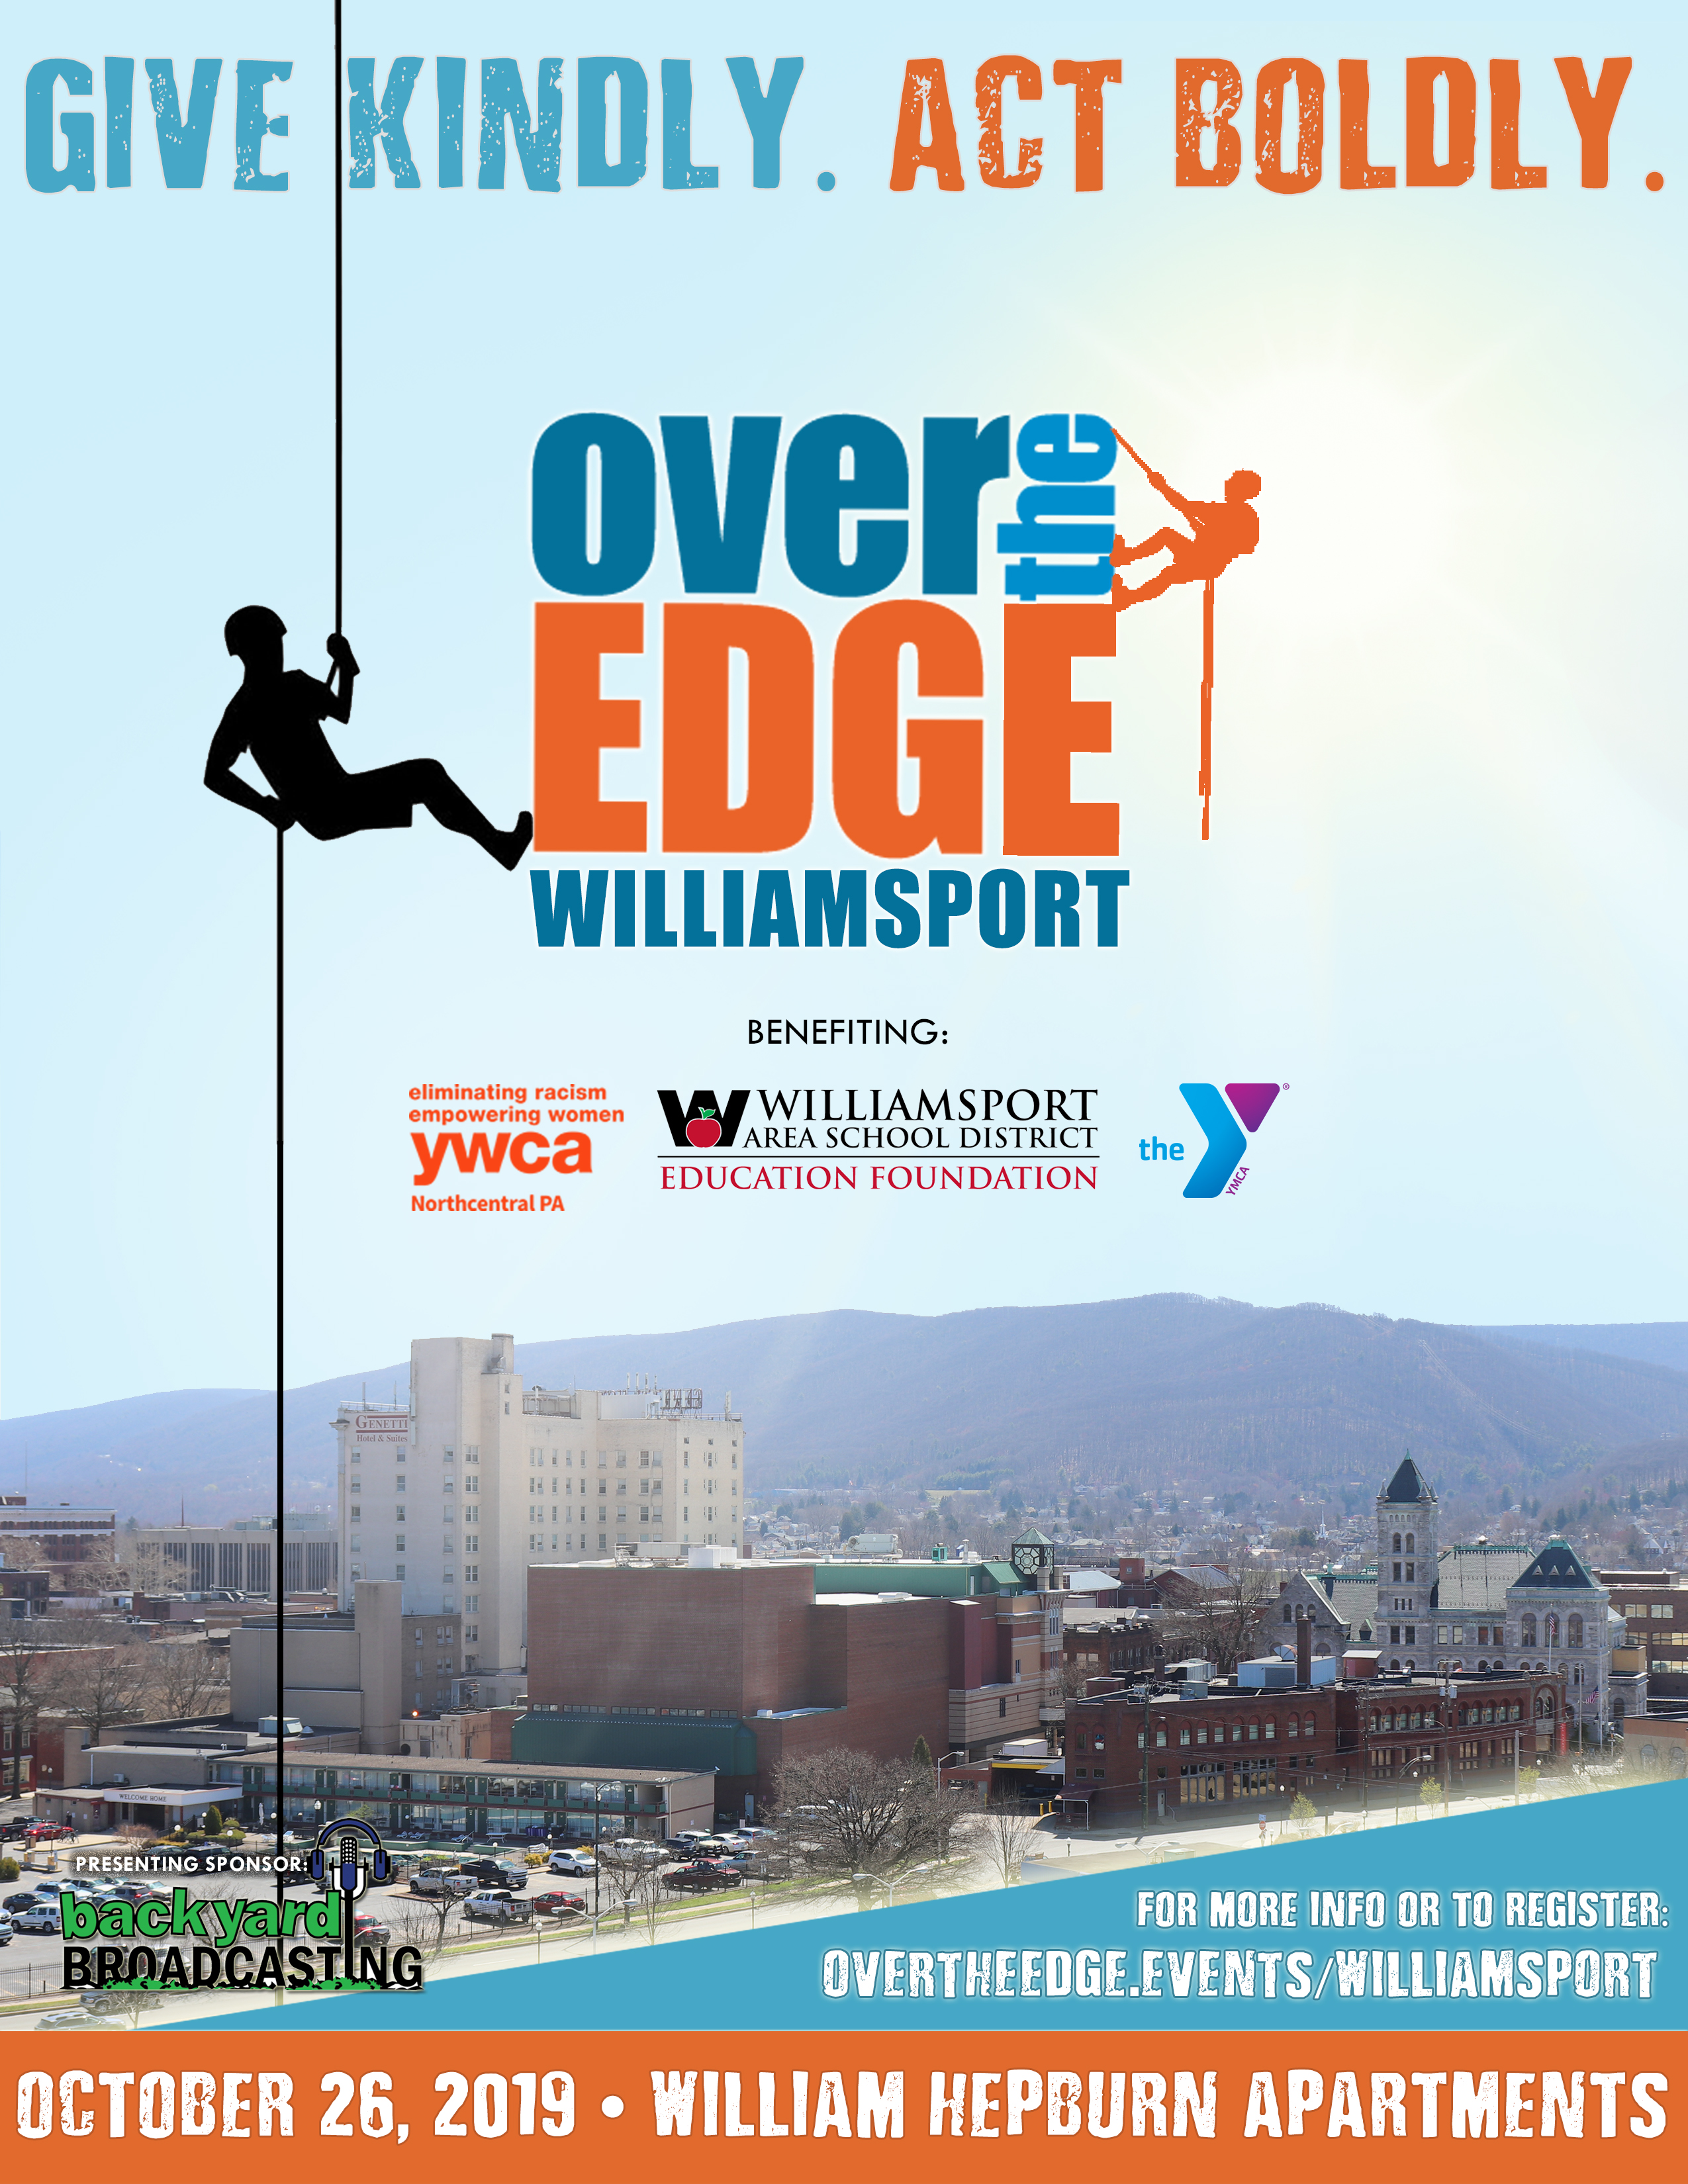 Over the Edge: Williamsport to Return This Fall